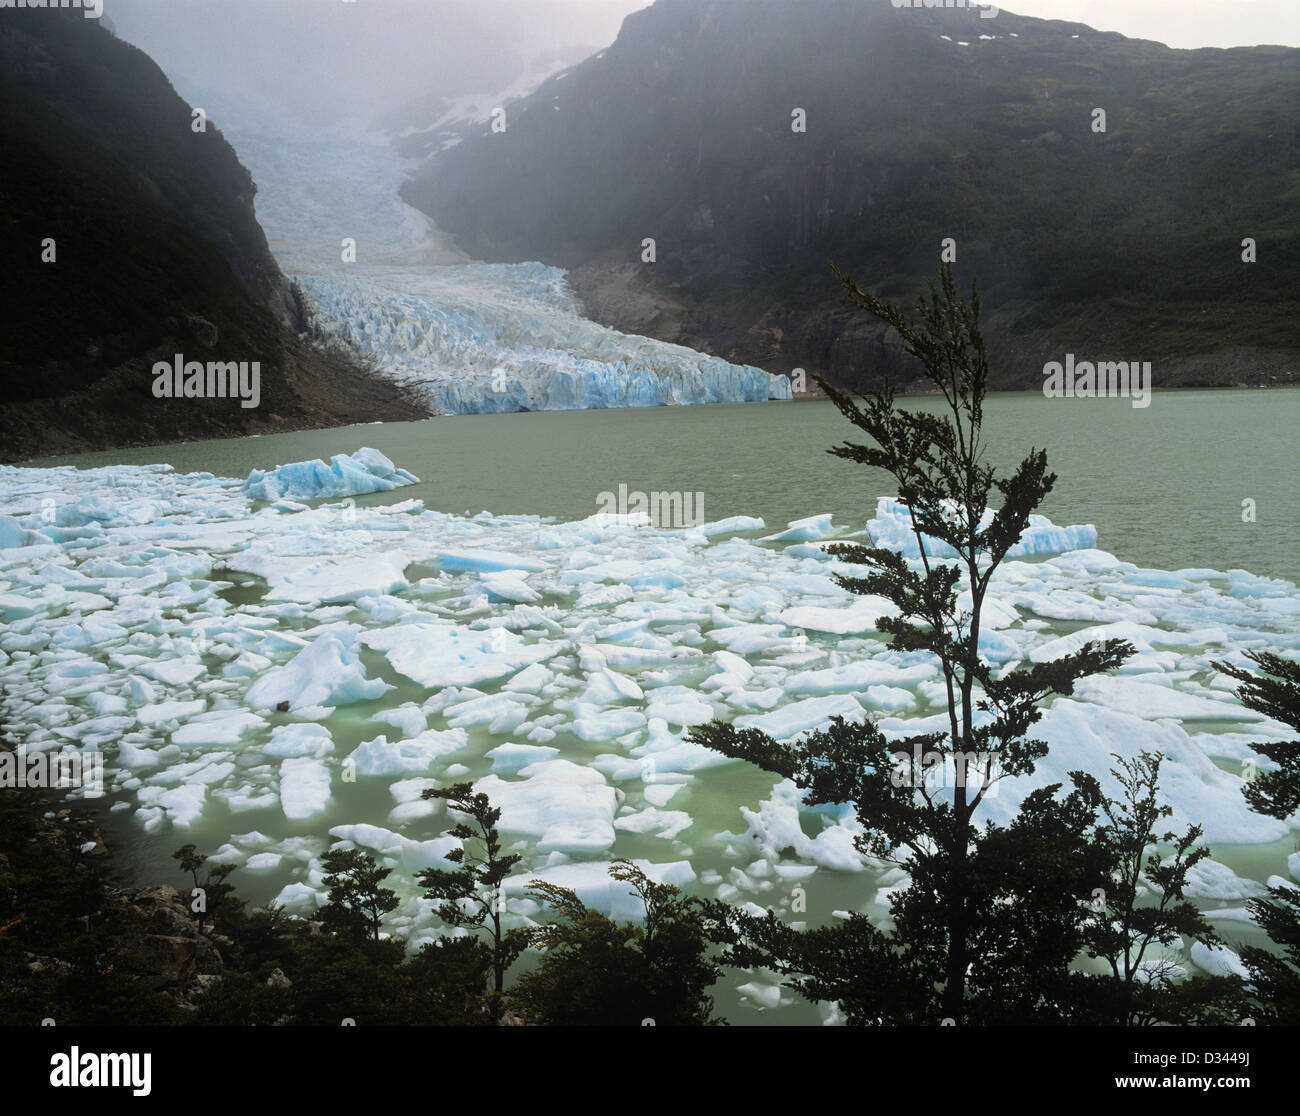 Chile, Region Magallanes, Seno Ultima Esperanza, Last Hope Sound, the Serrano glacier sends icebergs into a lagoon - Stock Image